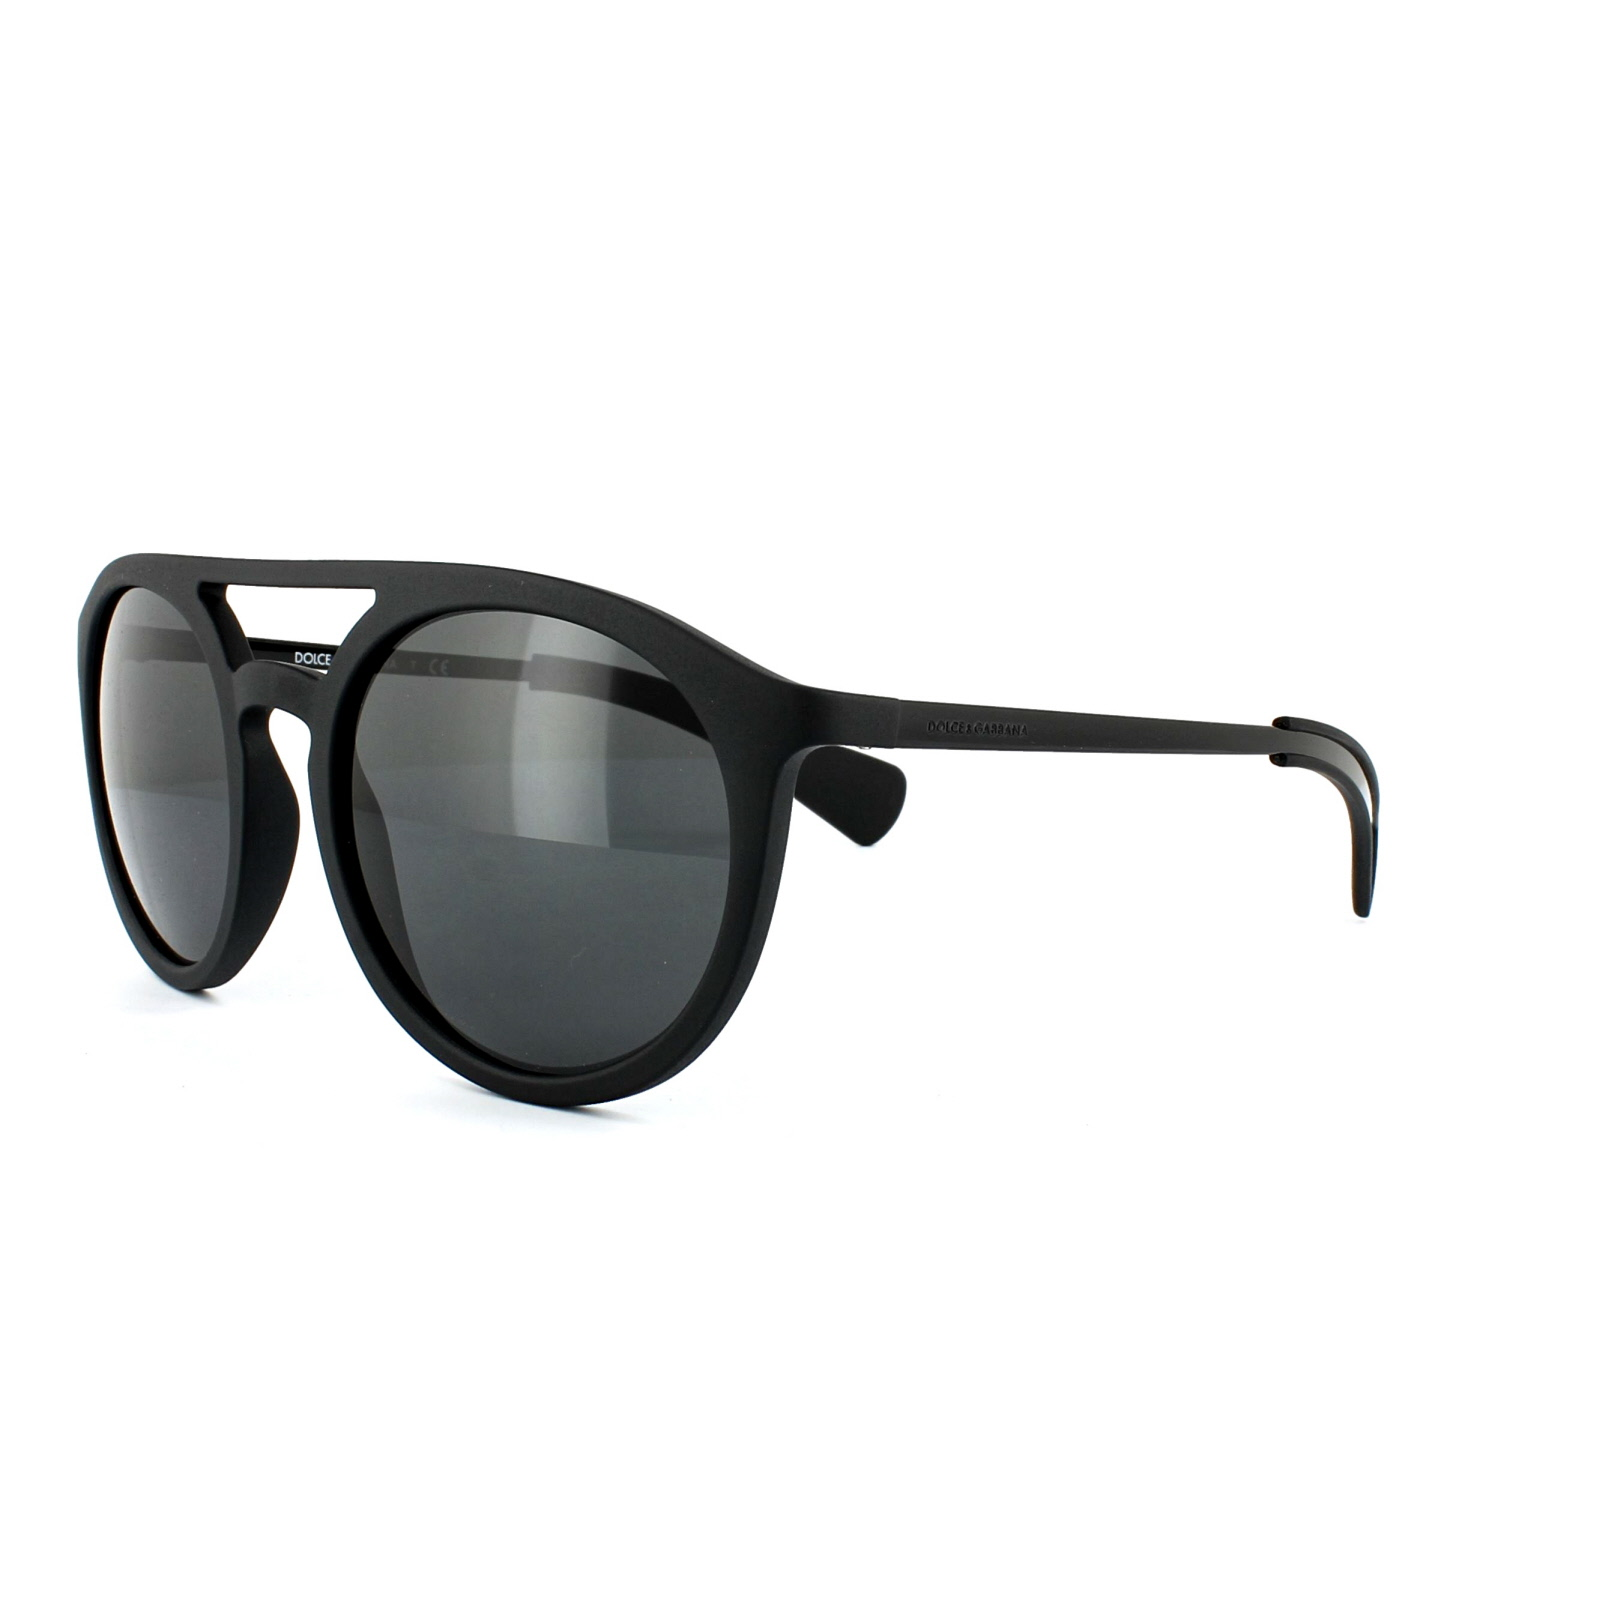 Dolce Gabbana Sunglasses Black  dolce gabbana sunglasses 6101 1934 87 matt black grey ebay